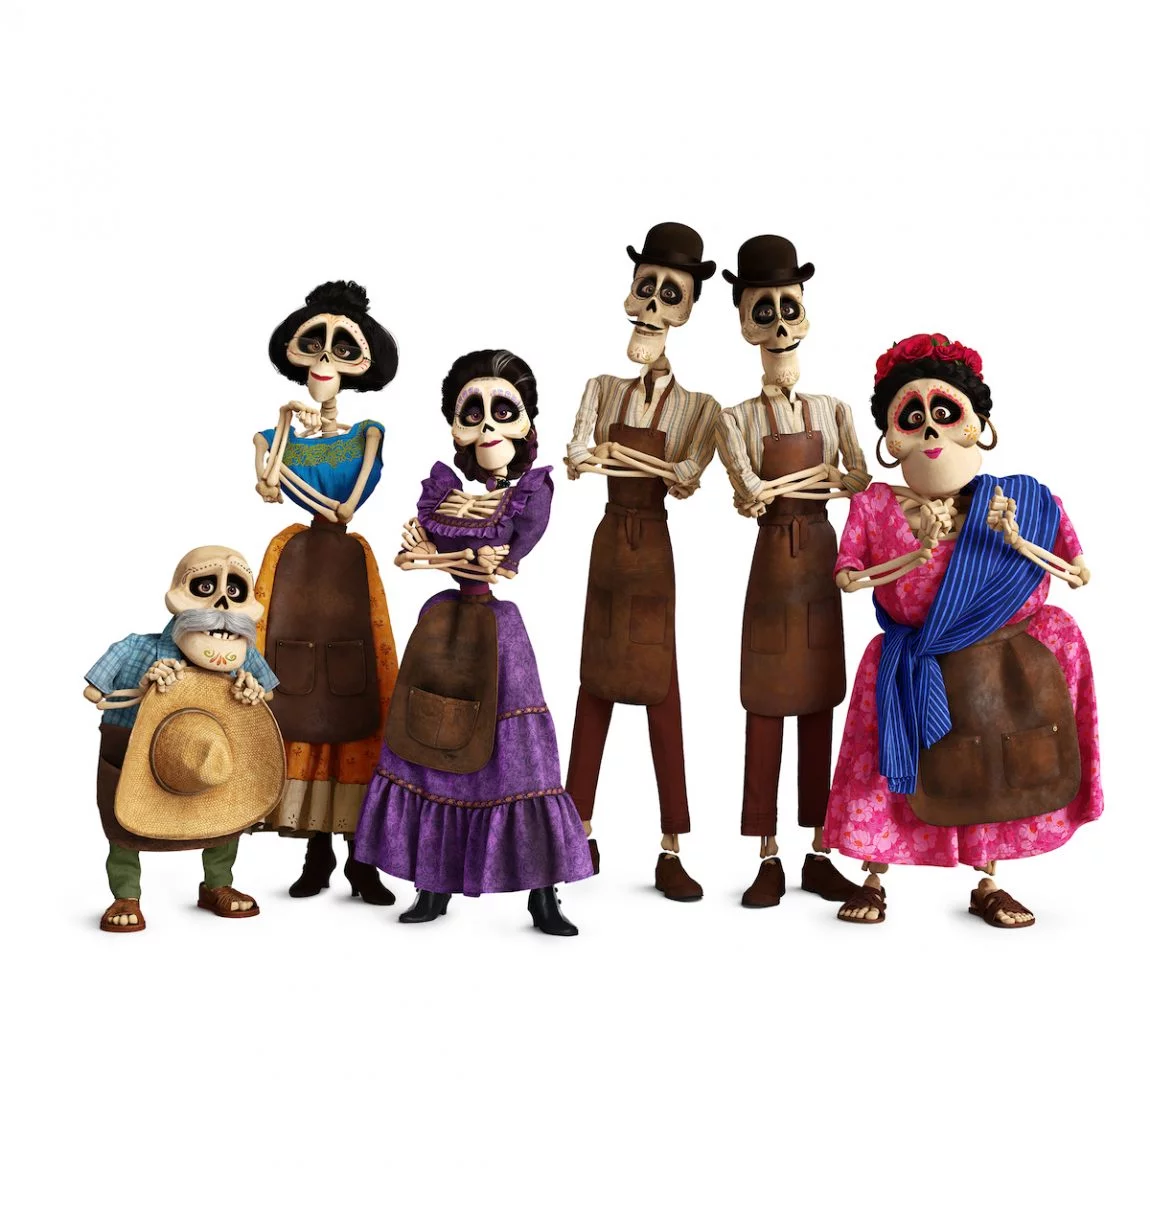 Coco Movie Png & Free Coco Movie.png Transparent Images #29261.